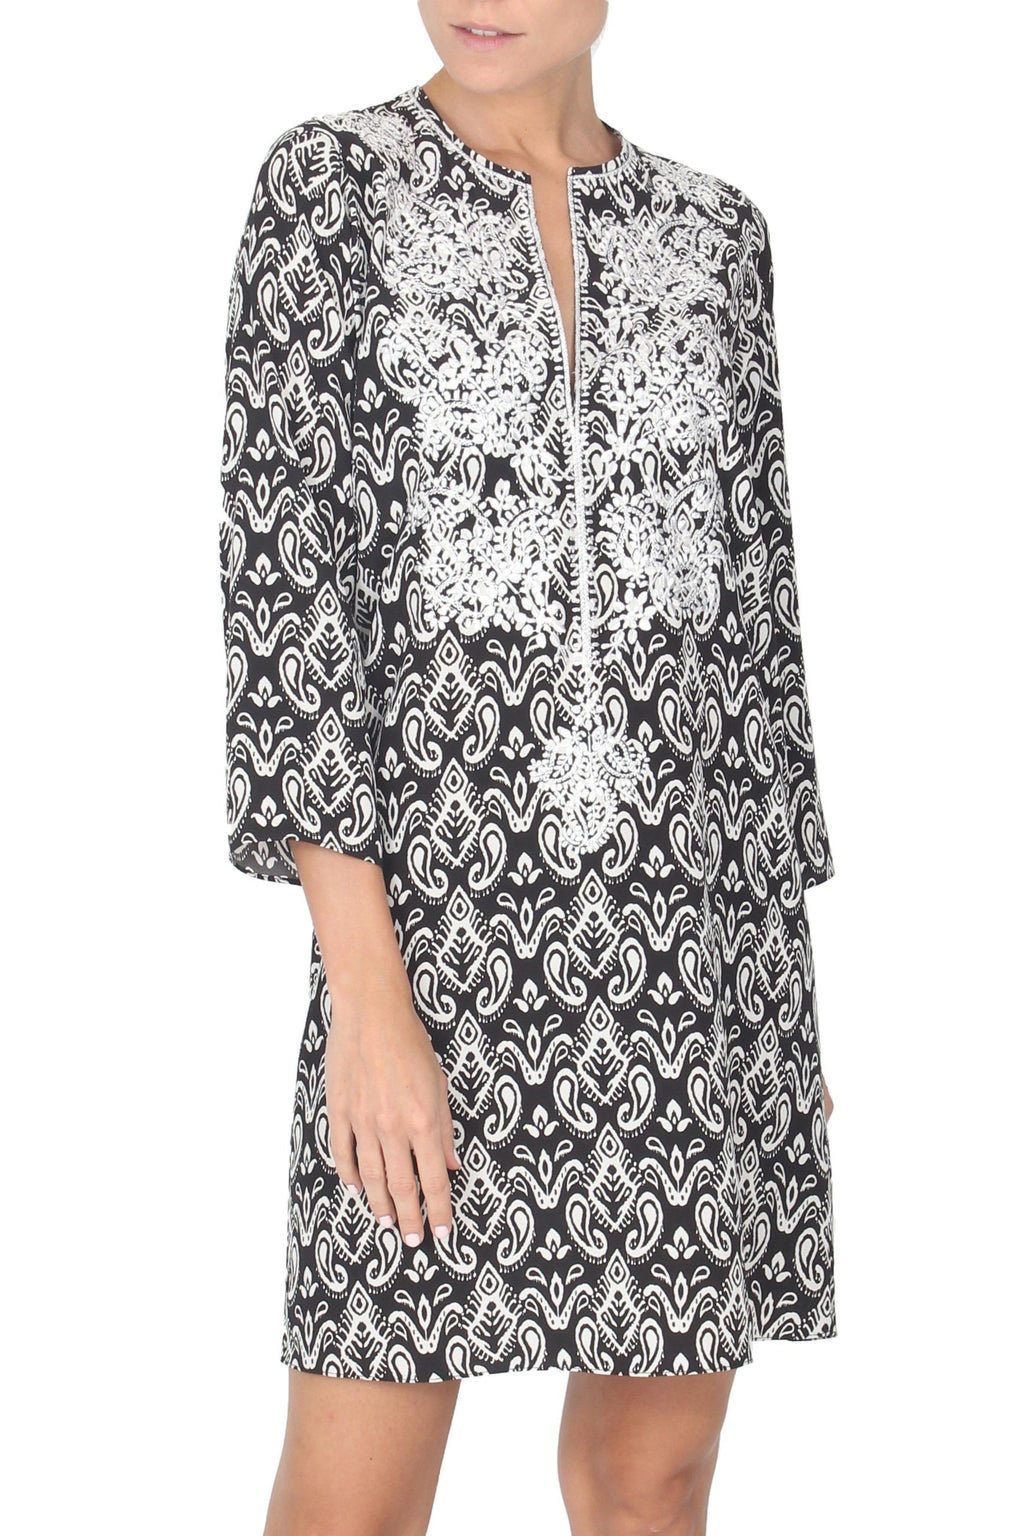 Embroidered Silk Crepe de Chine Printed Dress Tunics Marie France Van Damme 0 Baisley Black White